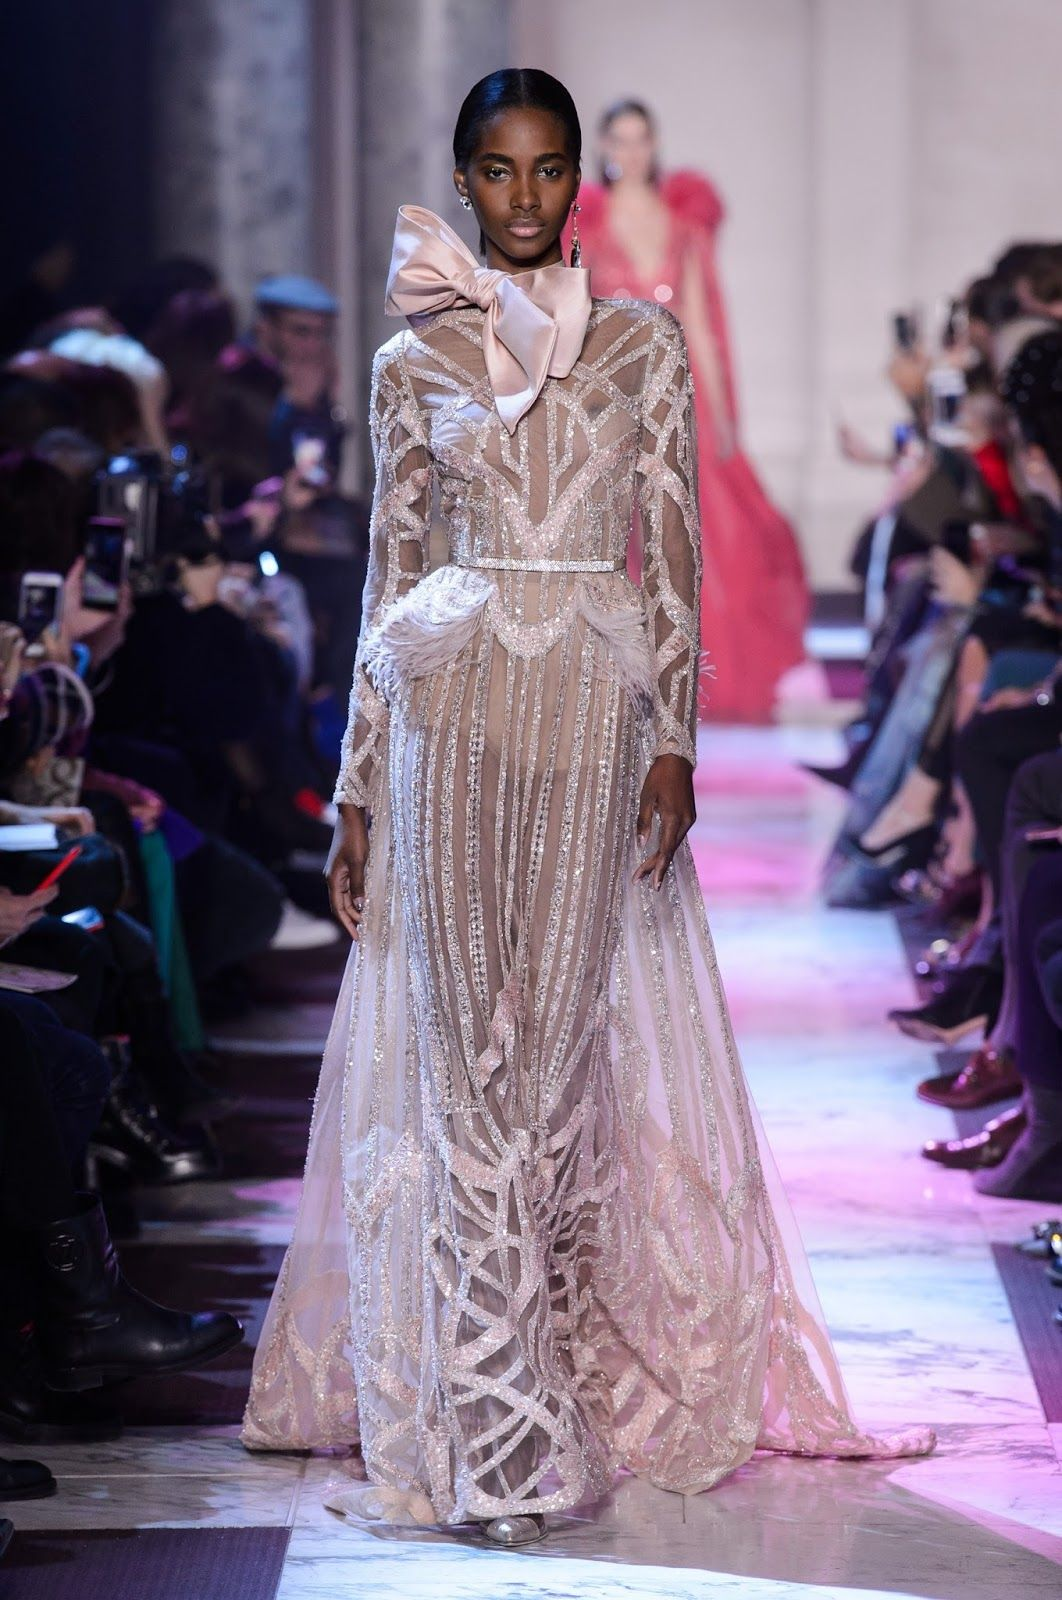 273b7e46e914 Gorgeous Couture Gowns: Elie Saab - More haute couture glamour from luxury  gown designer Elie Saab. Dreamy pastel gowns in lavender, blue, blush and  peach ...